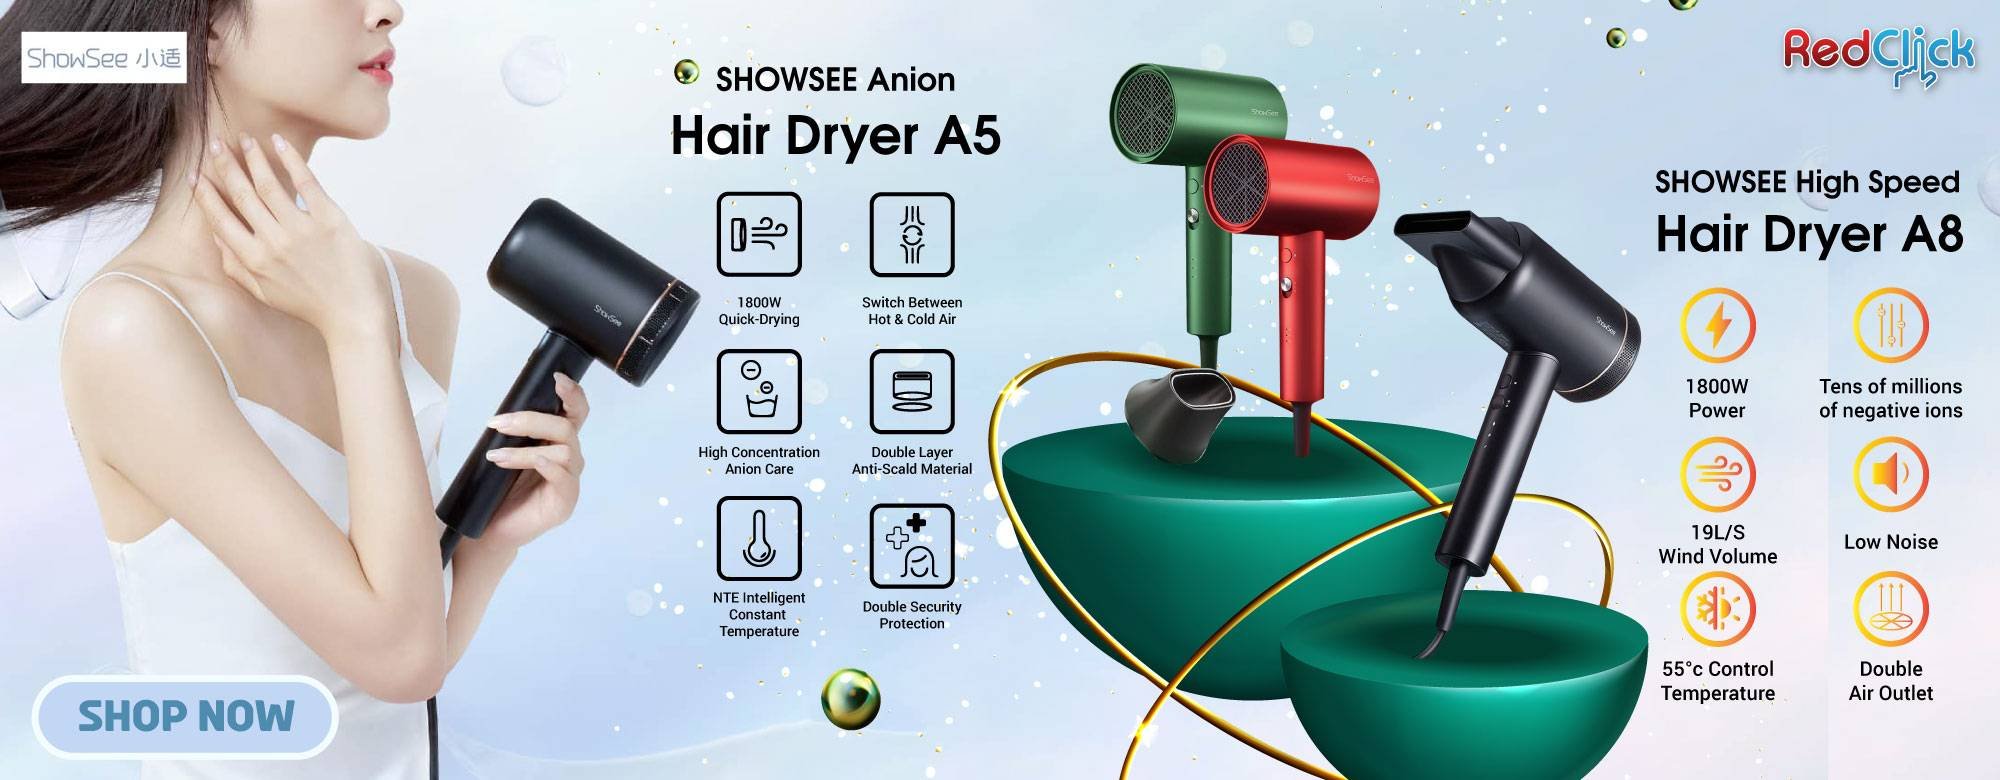 Showsee Hair Dryer